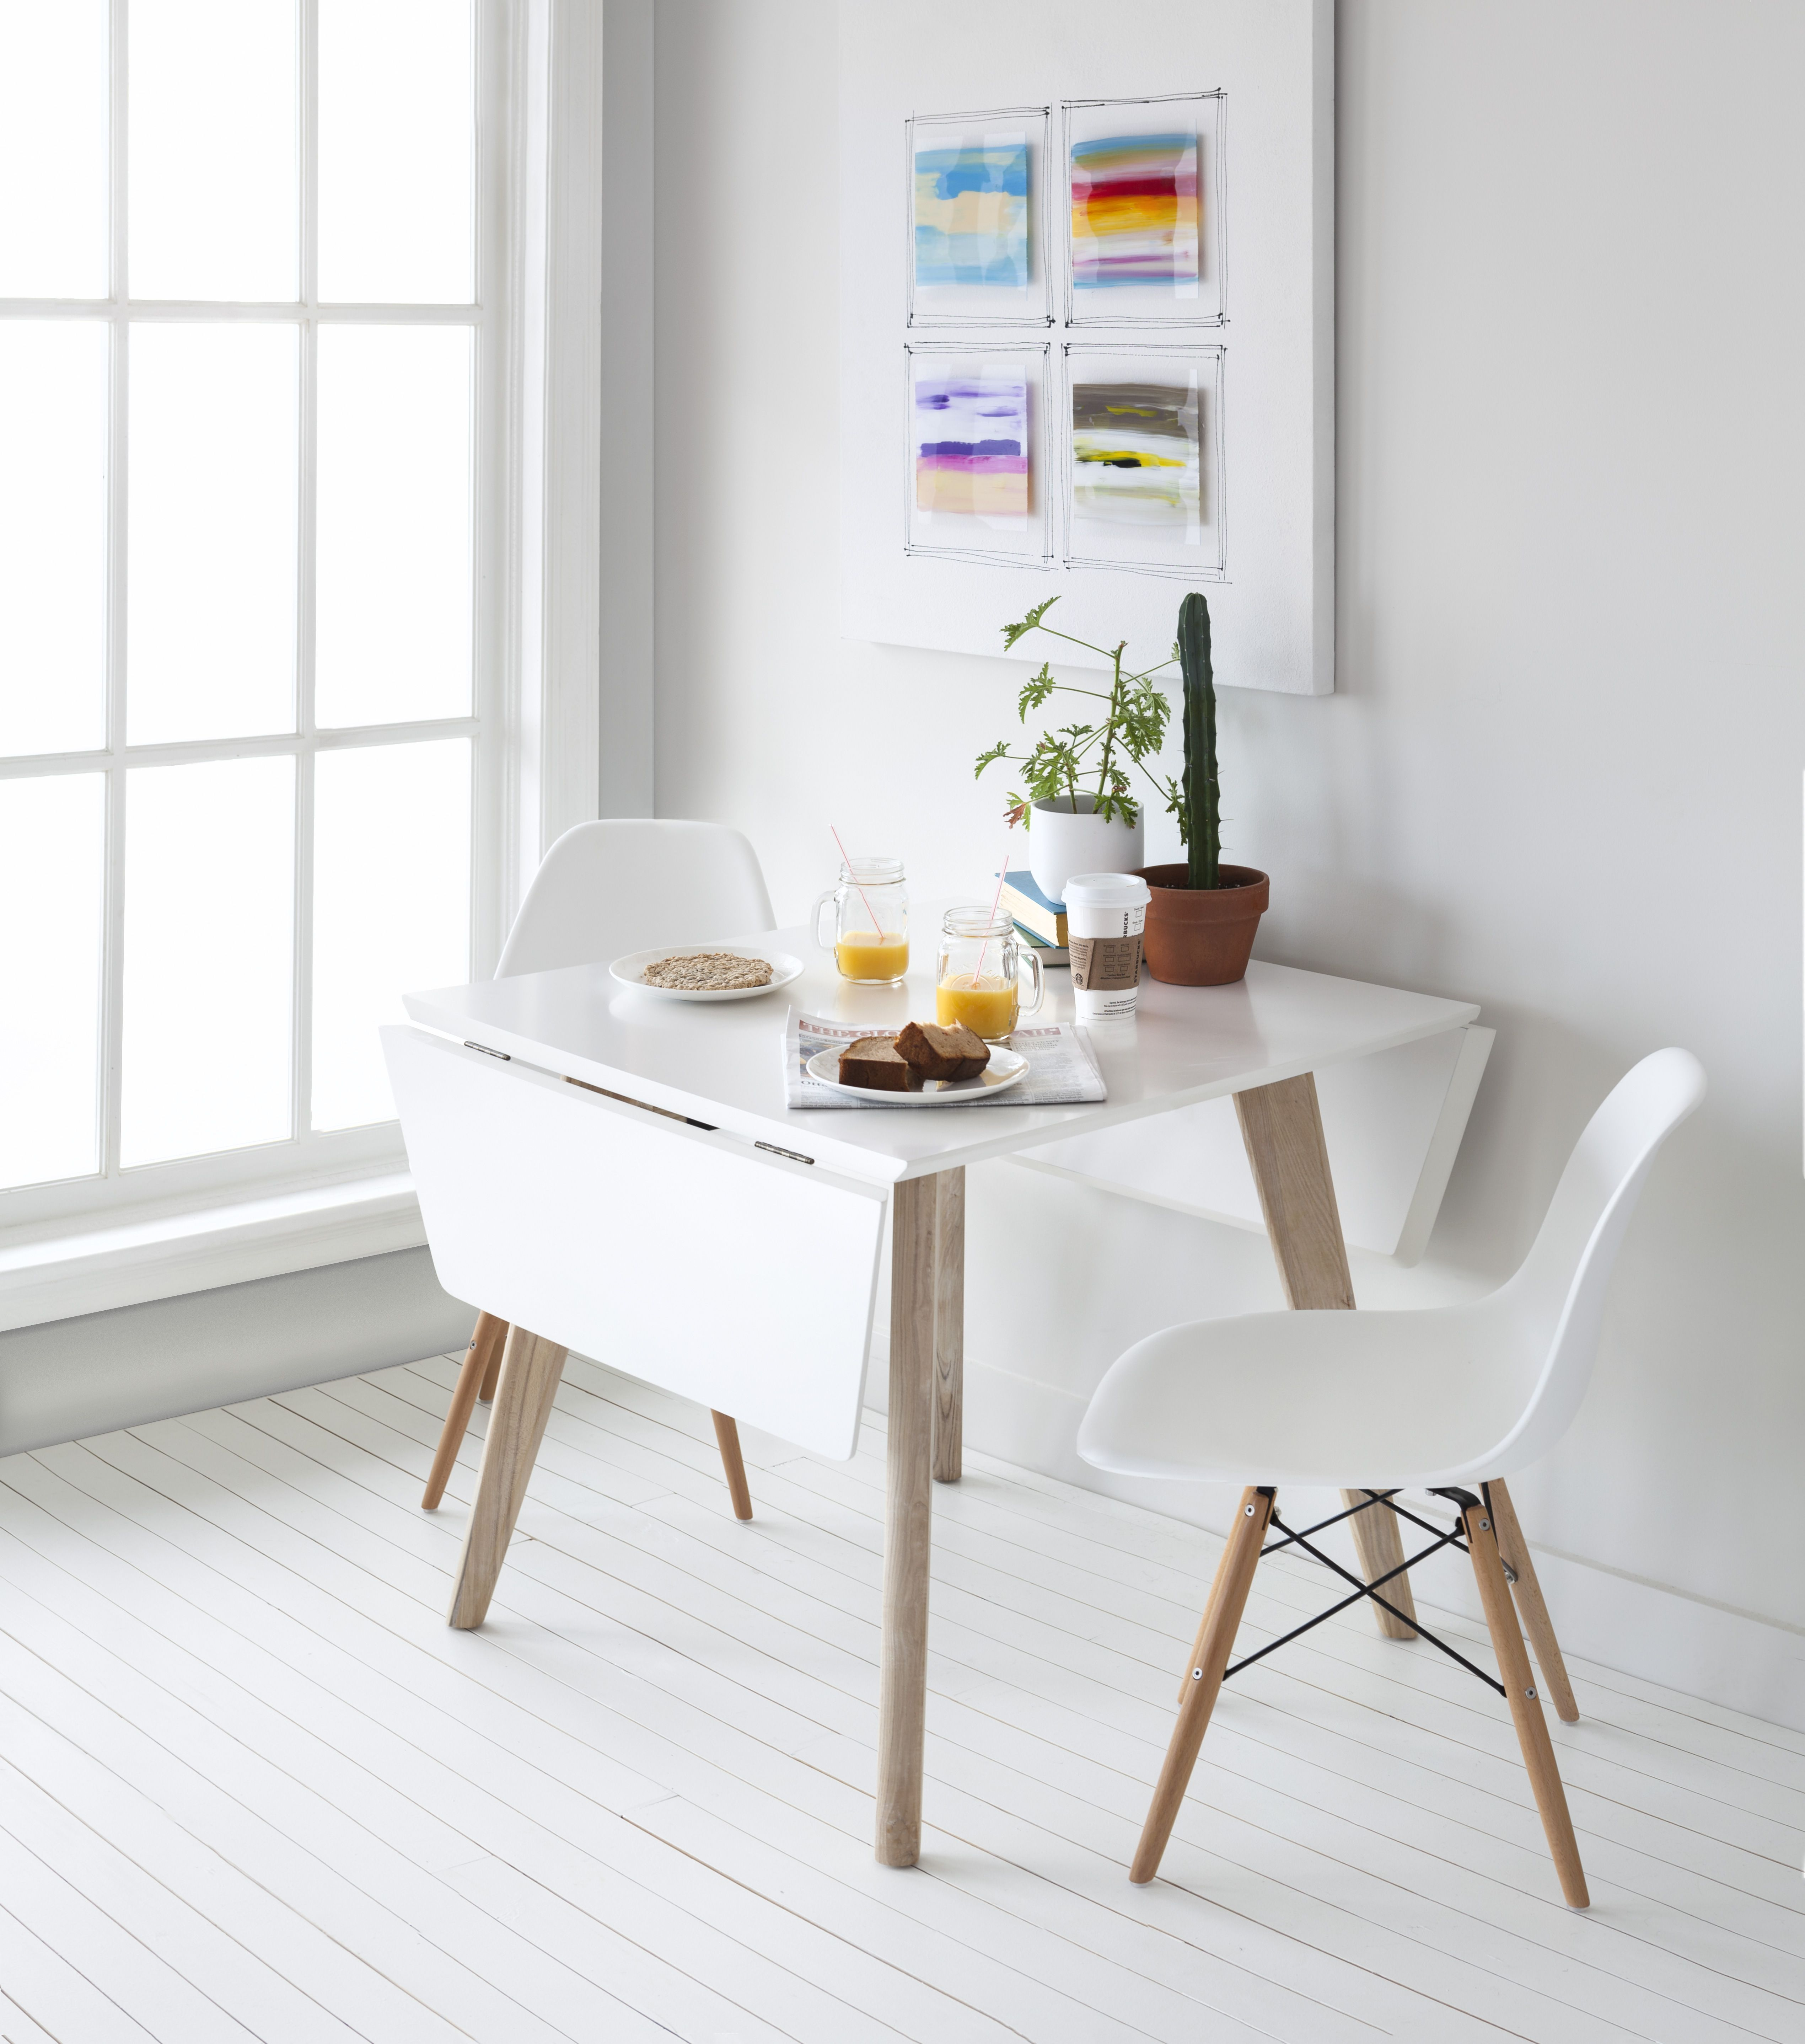 Furnitures Fashion Small Dining Room Furniture Design: City Living: Athena Dining Table